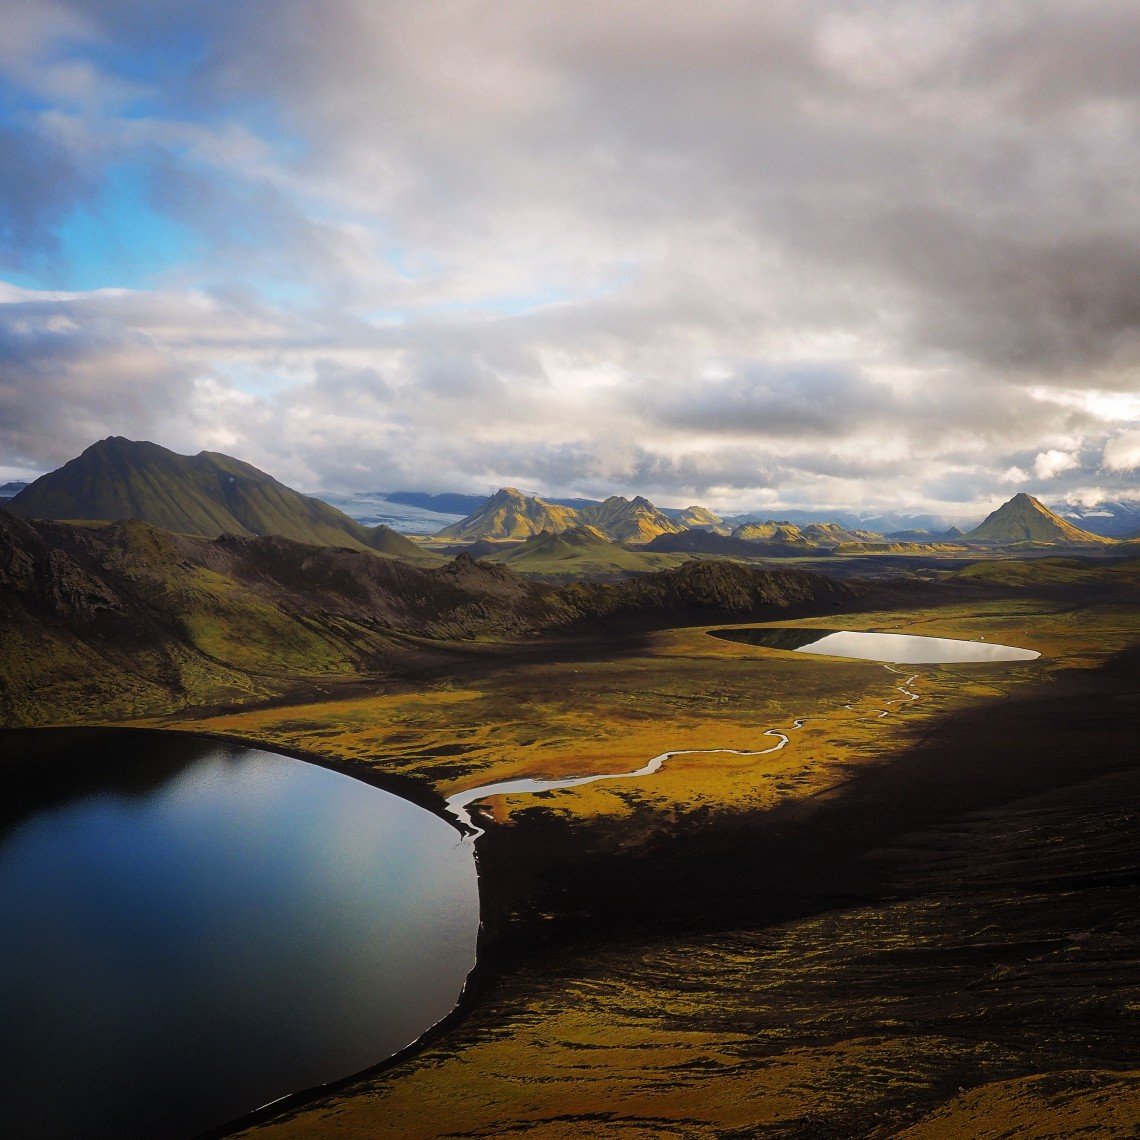 On his way back from Greenland, Markle stopped over in Iceland for a weeklong backpacking trip and snapped this shot of Álftavatn Lake.